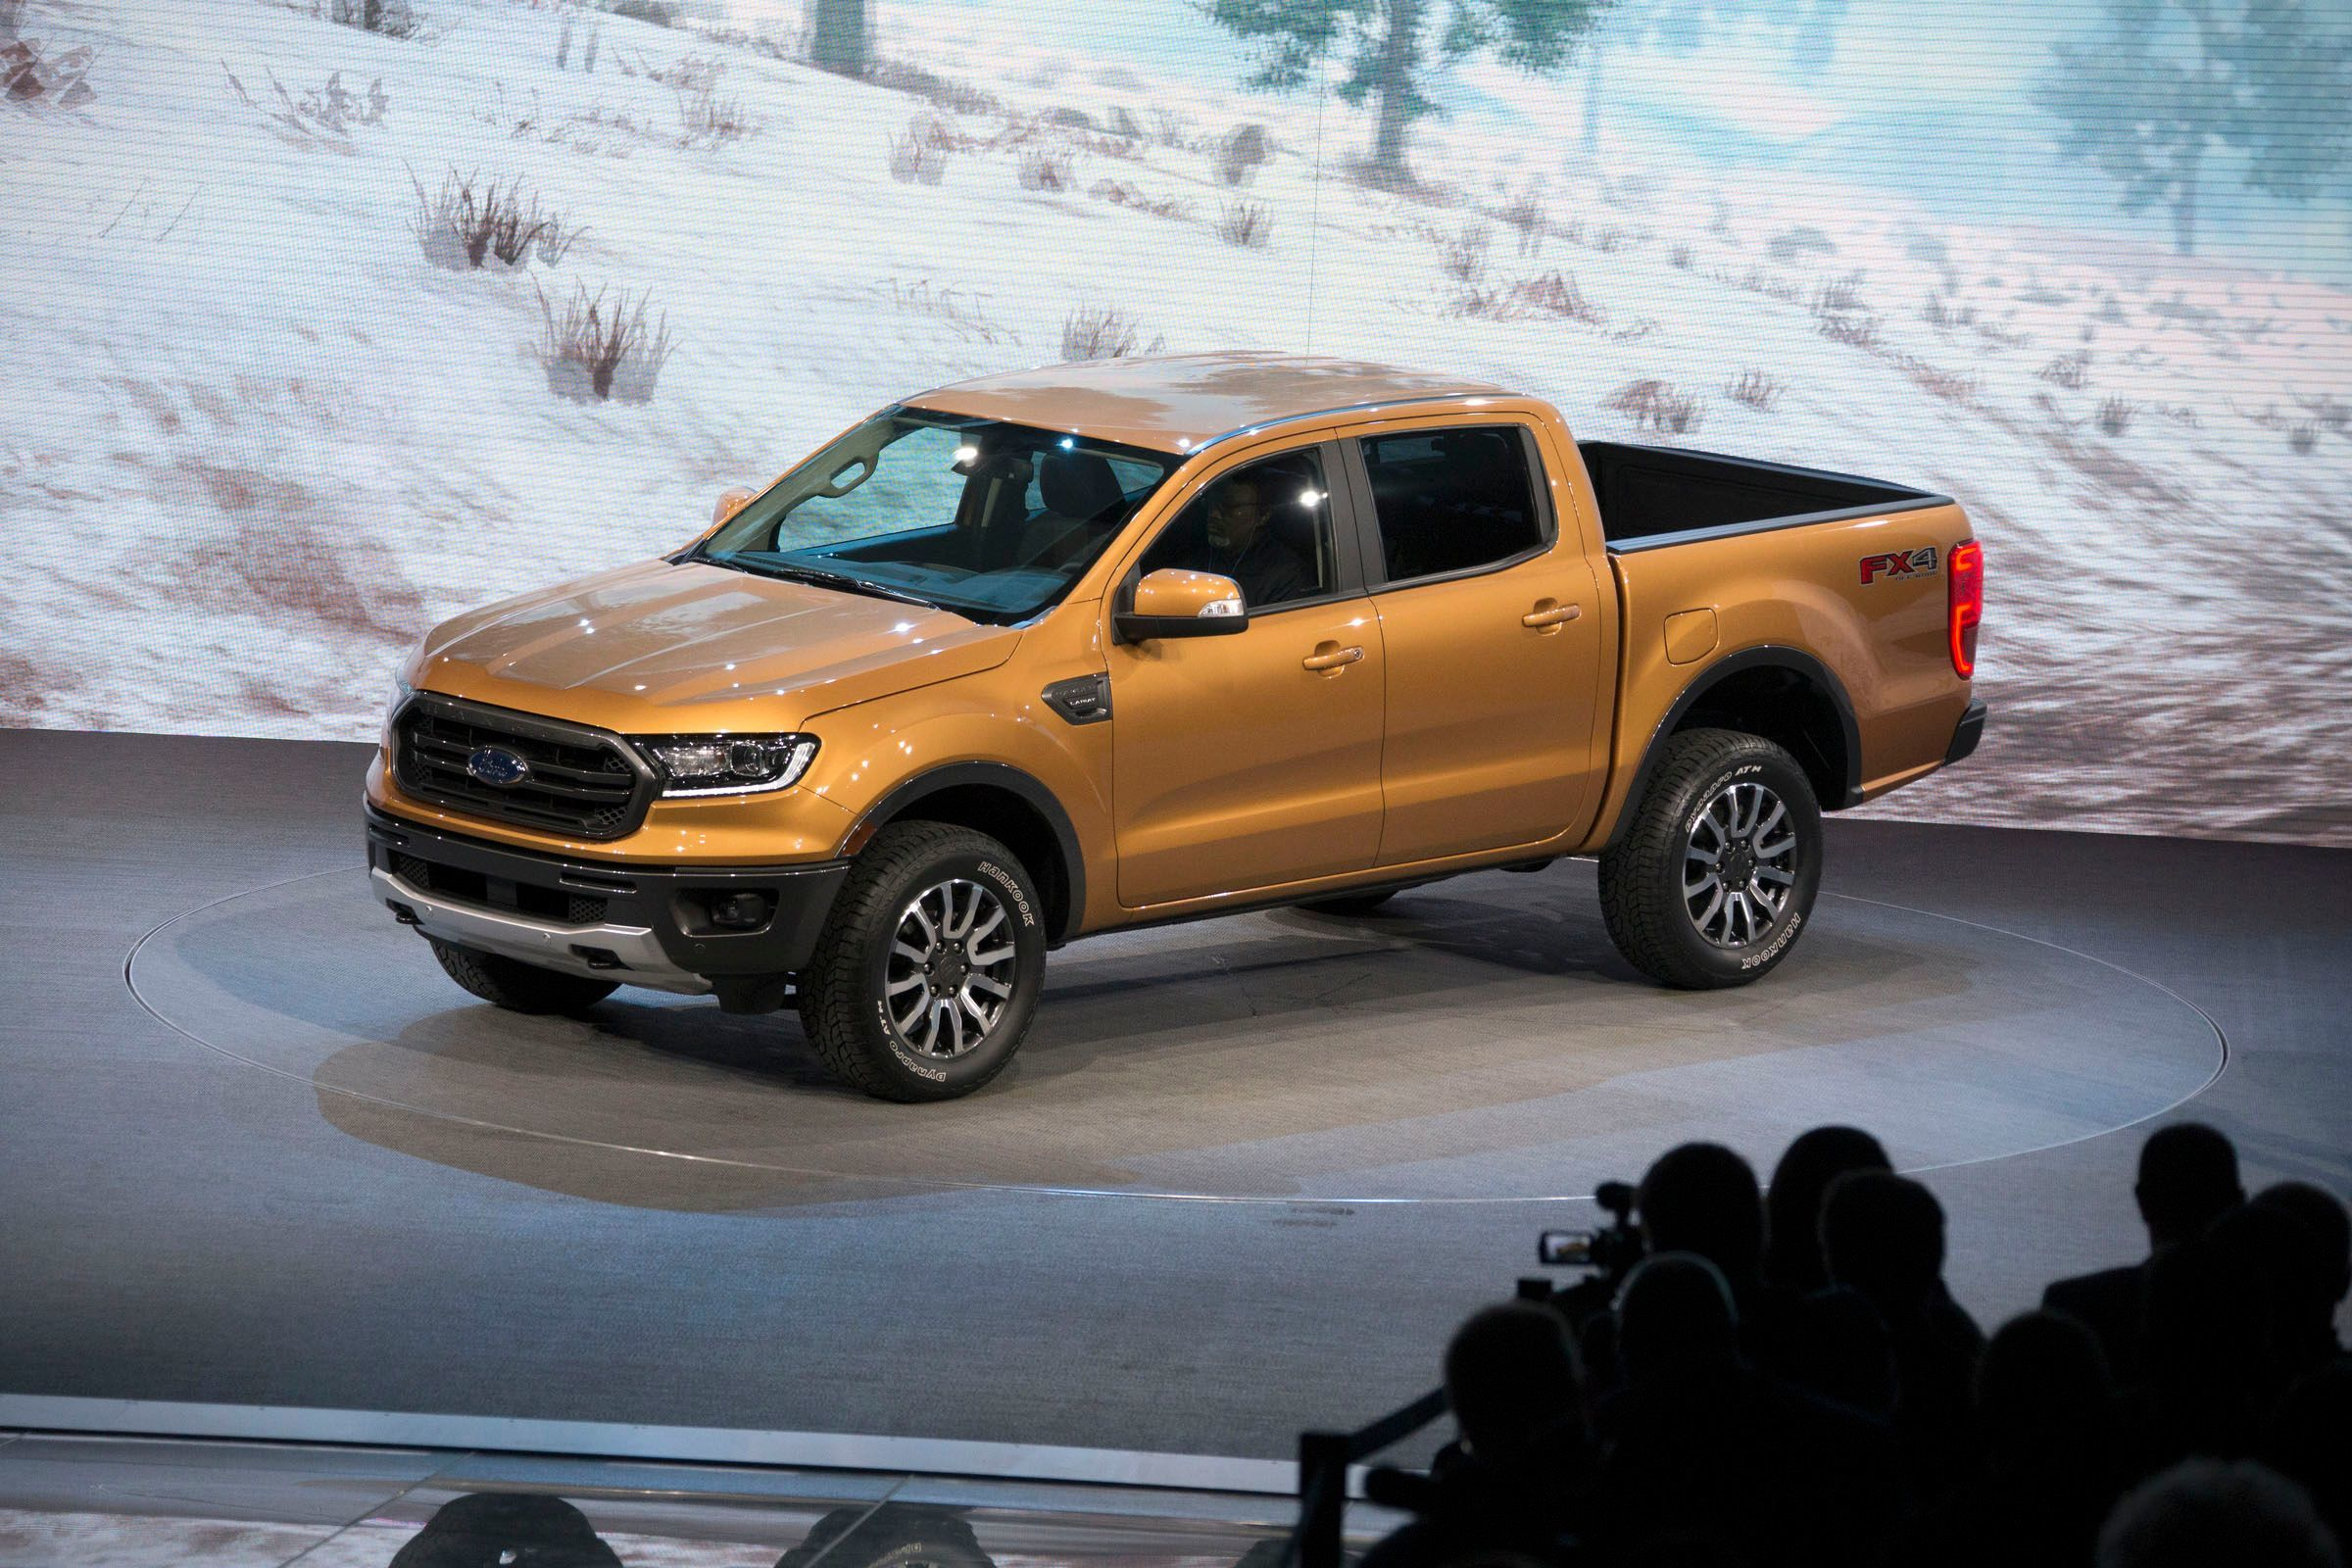 Ford reveals the 2019 Ford Ranger at the North American International Auto Show in Detroit in January 2018.